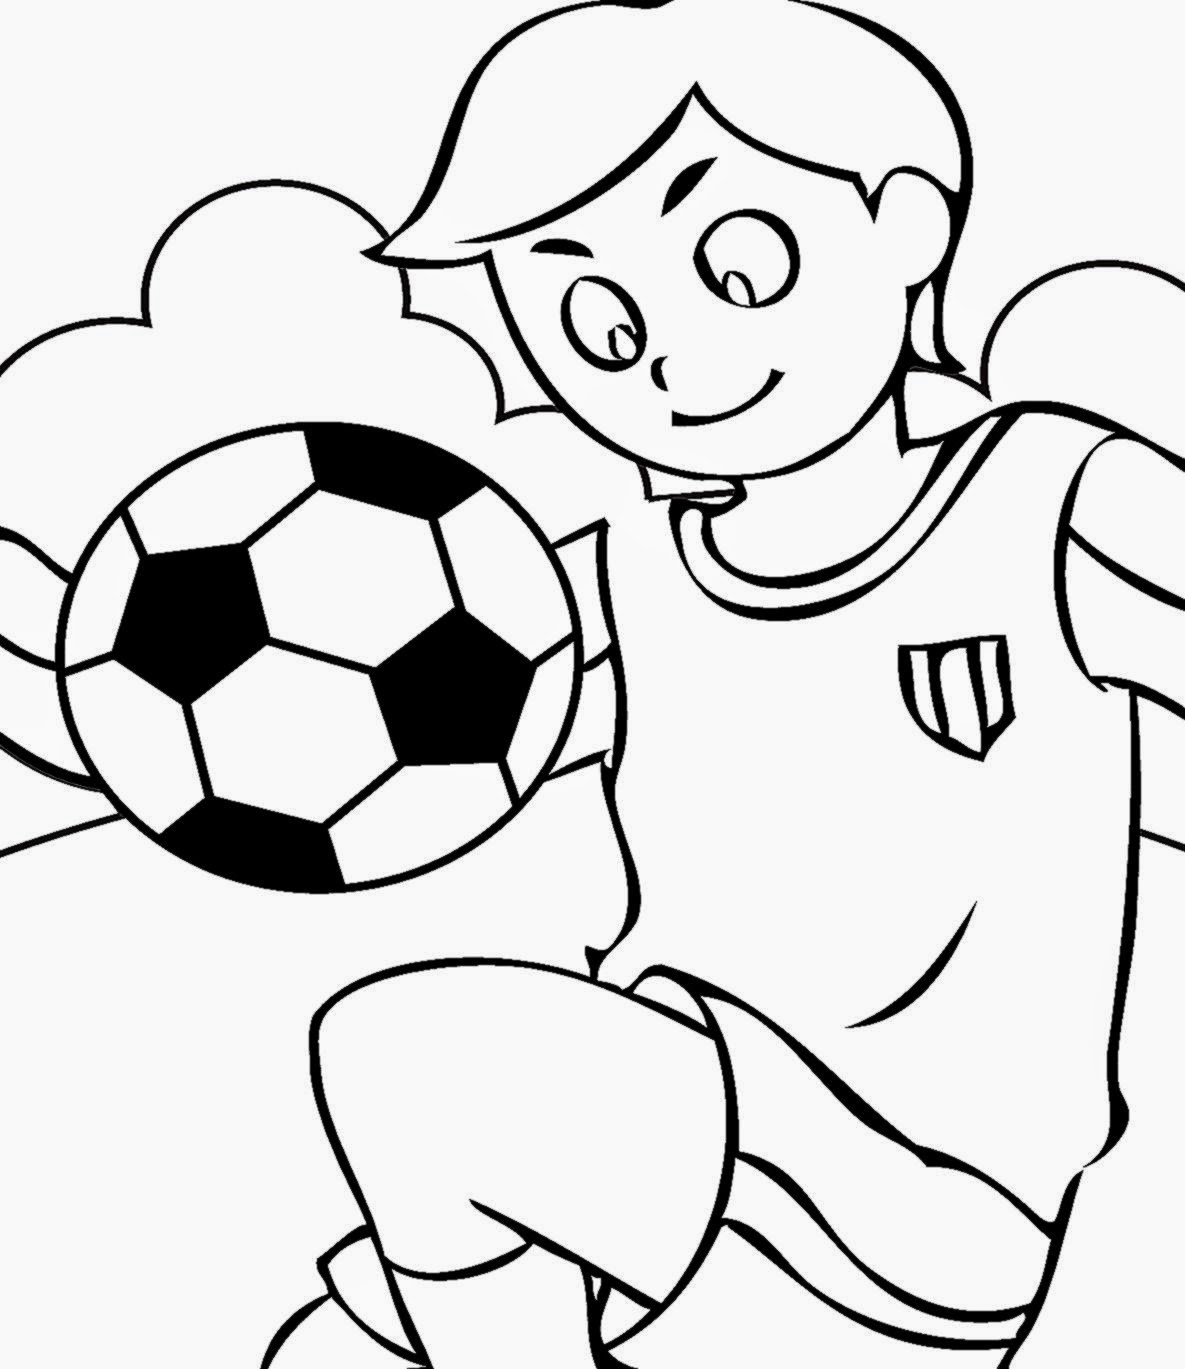 Soccer Coloring Sheets